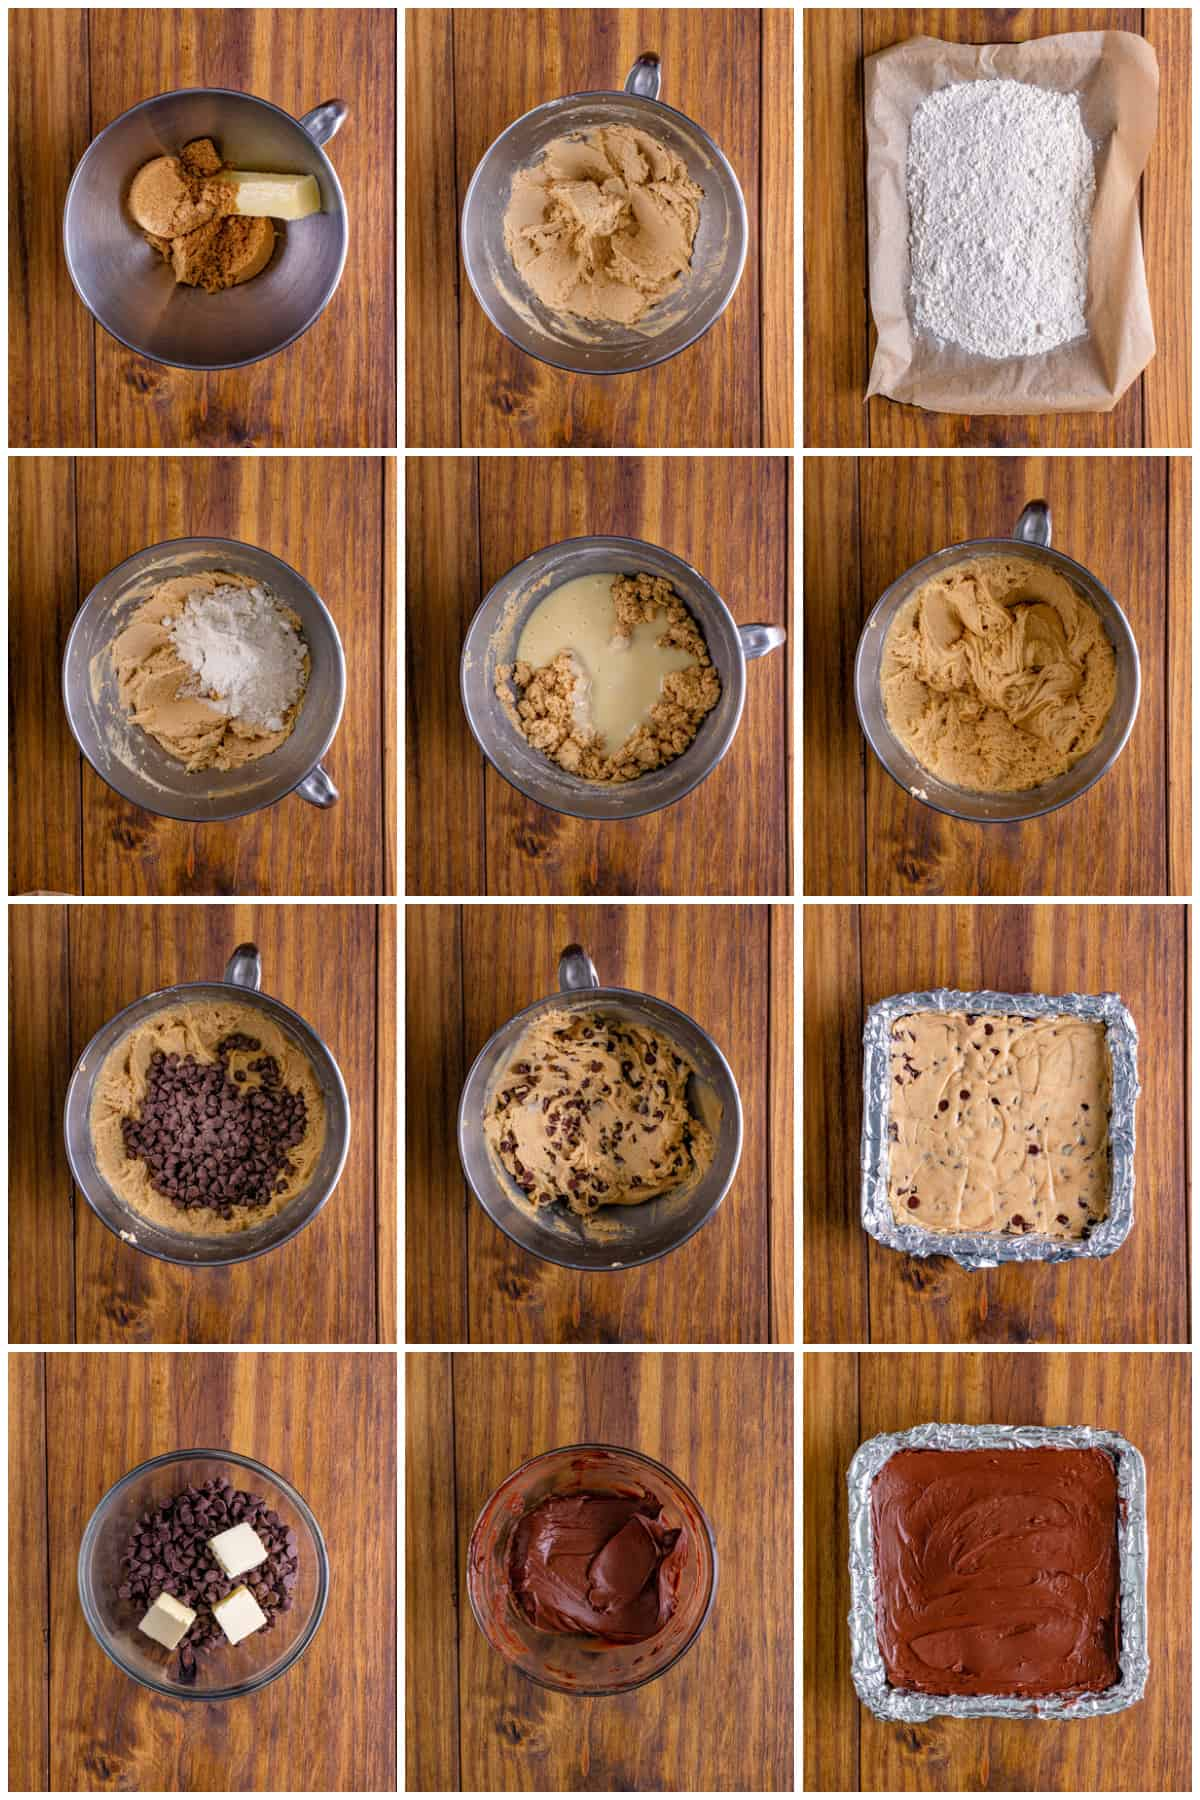 Step by step photos on how to make Cookie Dough Bars